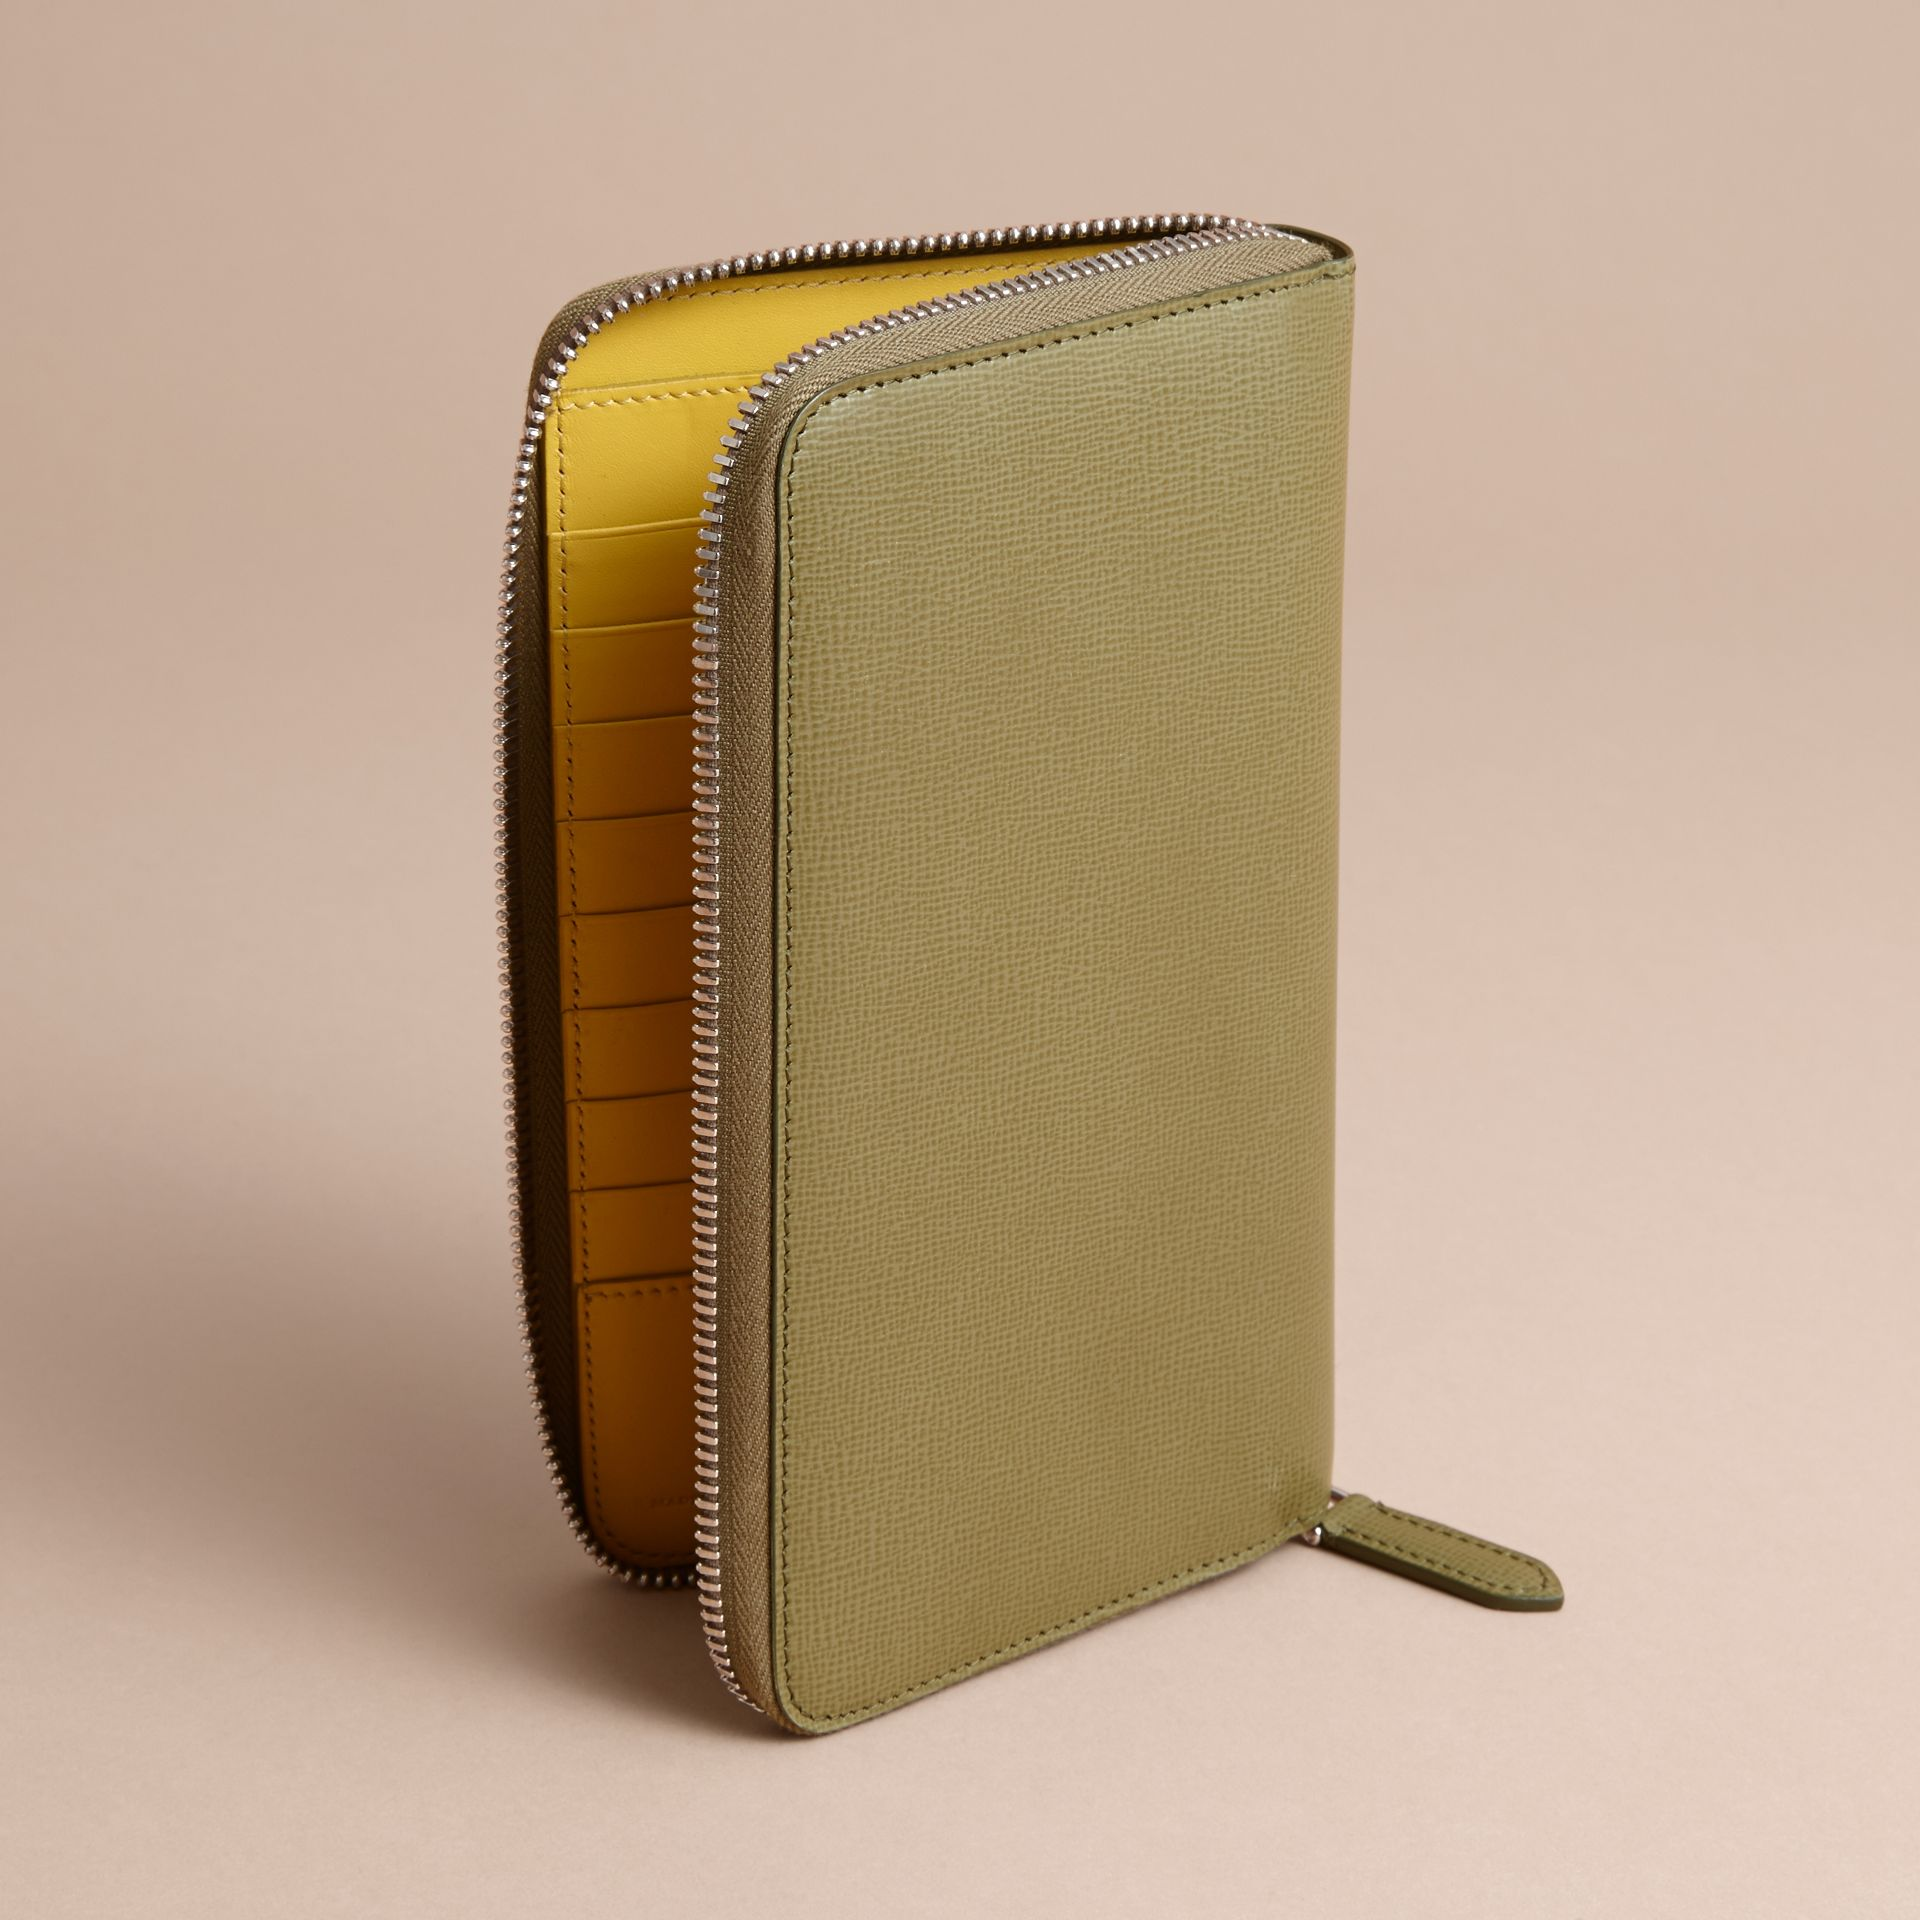 London Leather Ziparound Wallet in Olive Green | Burberry - gallery image 4